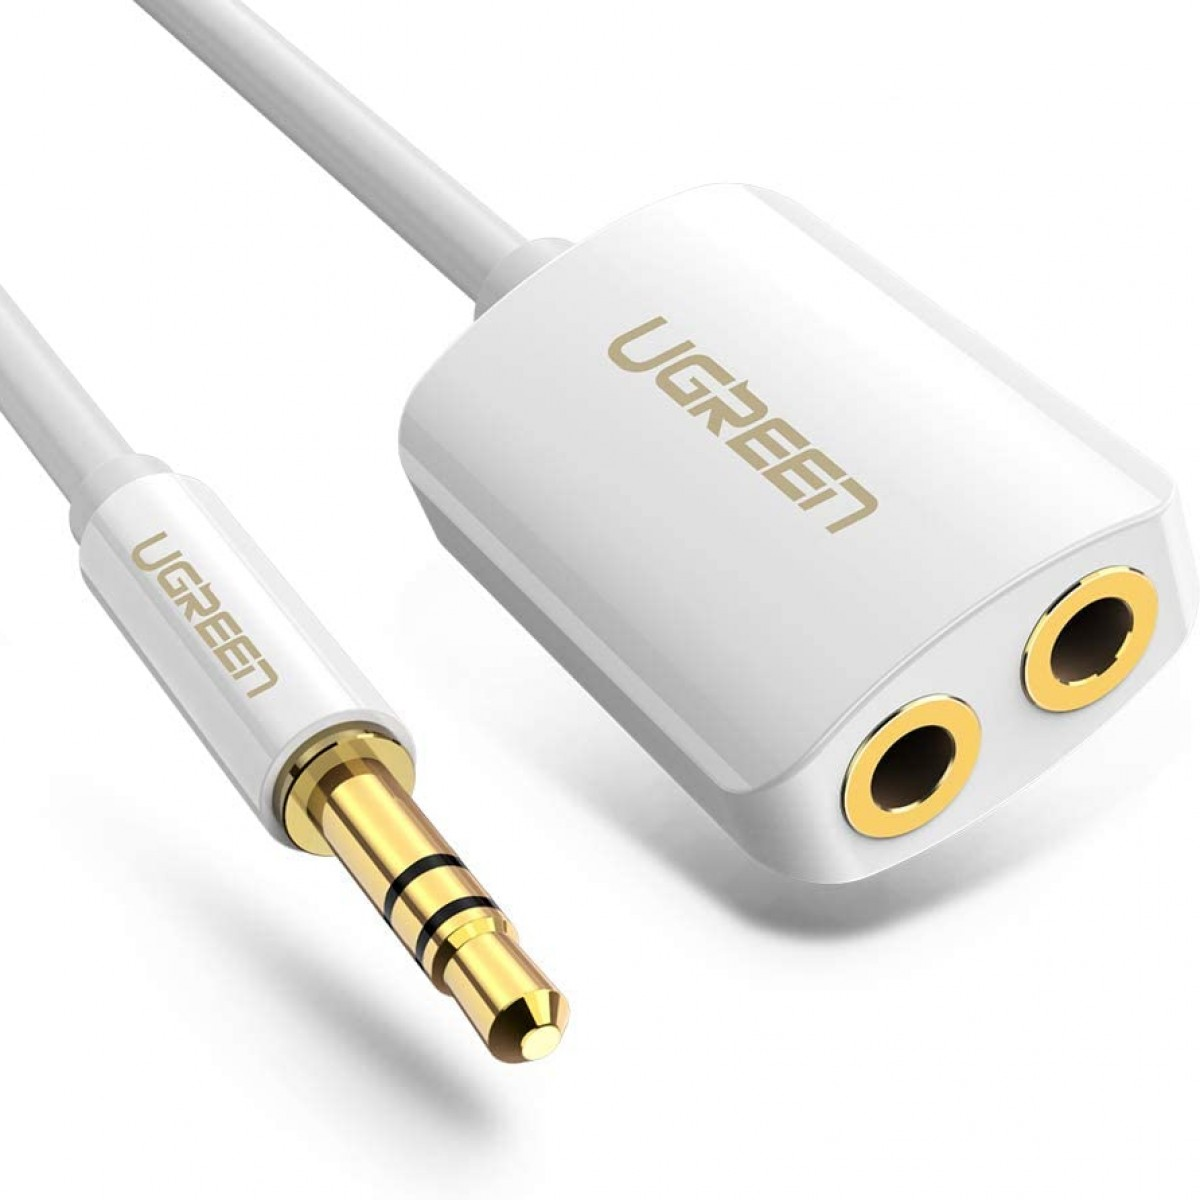 ugreen10738-35mm-audio-stereo-y-splitter-cable-35mm-male-to-2-port-35mm-female